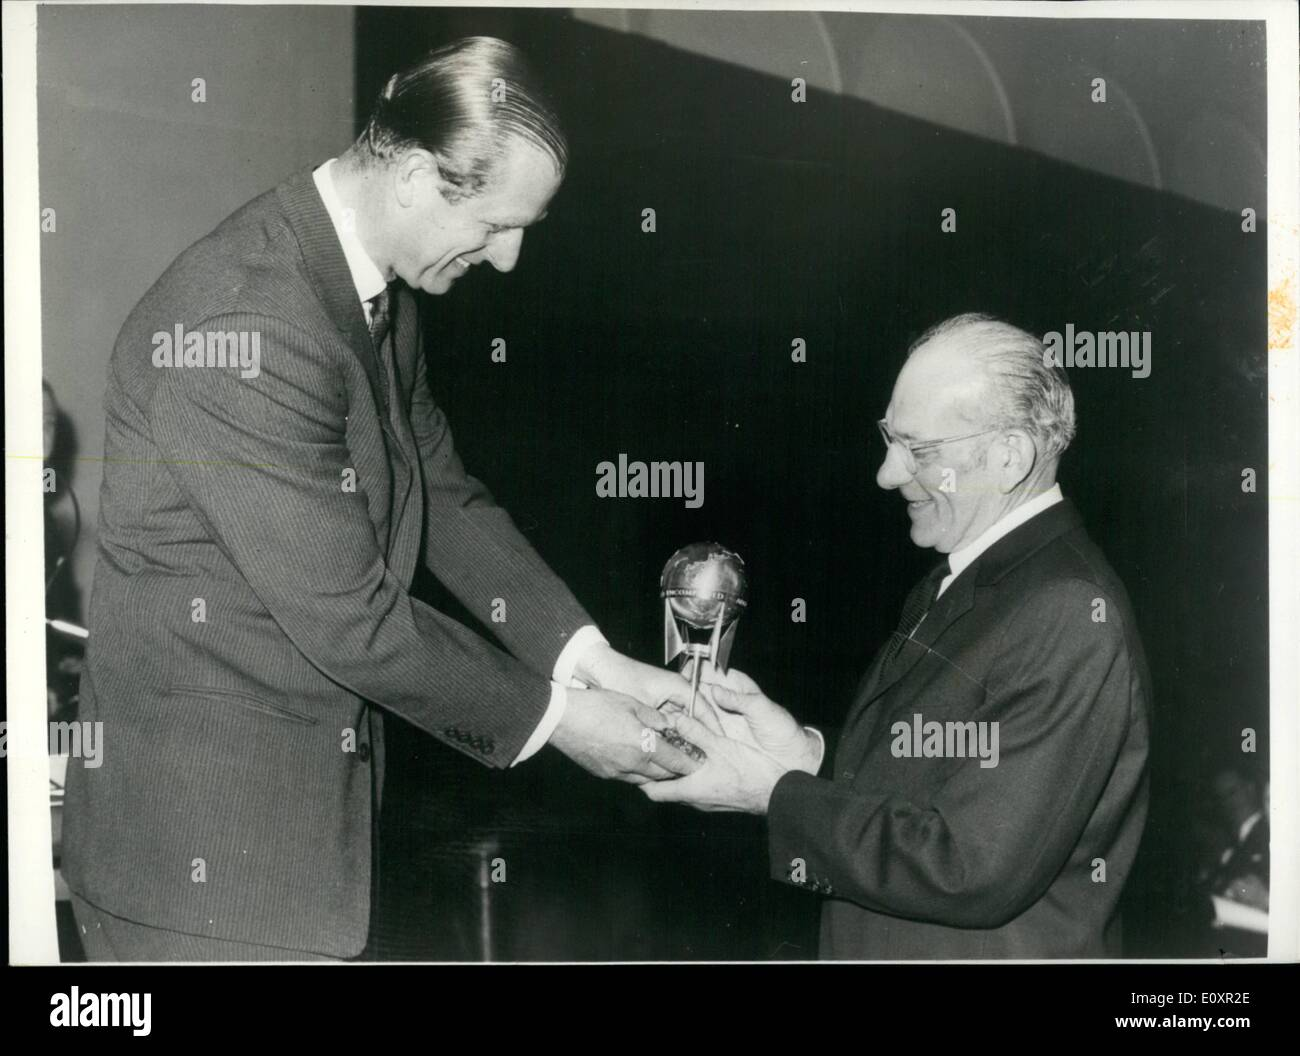 Oct. 10, 1967 - PRINCE PHILLIP PRESENTS AWARDS TO SIR FRANCIS CHICHESTER. PRINCE PHILLIP yesterday presented three awards to SIR FRANCIS CHICHESTER, at the institute of Navigation annual meeting, at the Royal Geographical Society, Kensington Gors, London. The awards were (1) A special award made by the Institute of Navigation to Sir Francis for his circumnavigation of the globe.(2) The superior Achievment Award of the American Institute of Navigation and (3) the Gold Medal of the Australian Institute of Navigation - Stock Image